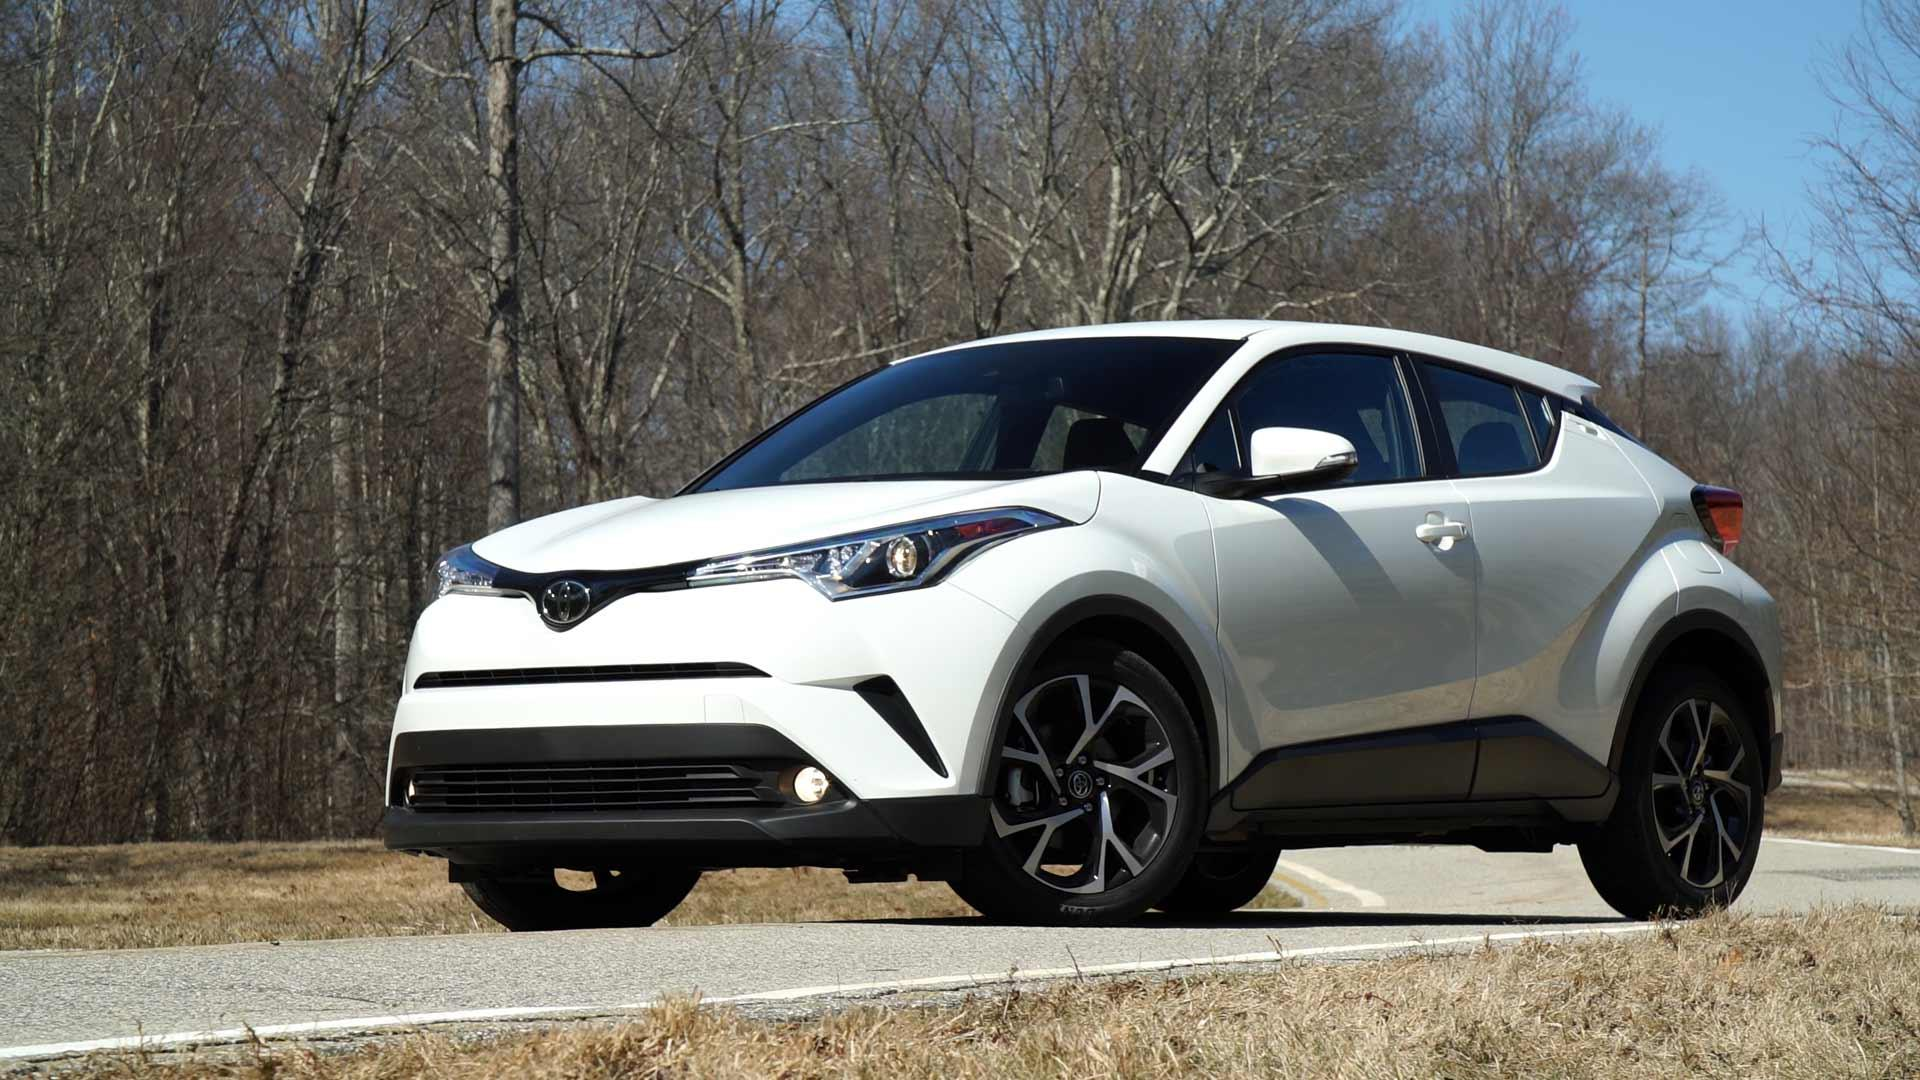 Latest Venza 2016 >> 2018 Toyota C-HR SUV Targets a Younger Audience - Consumer Reports